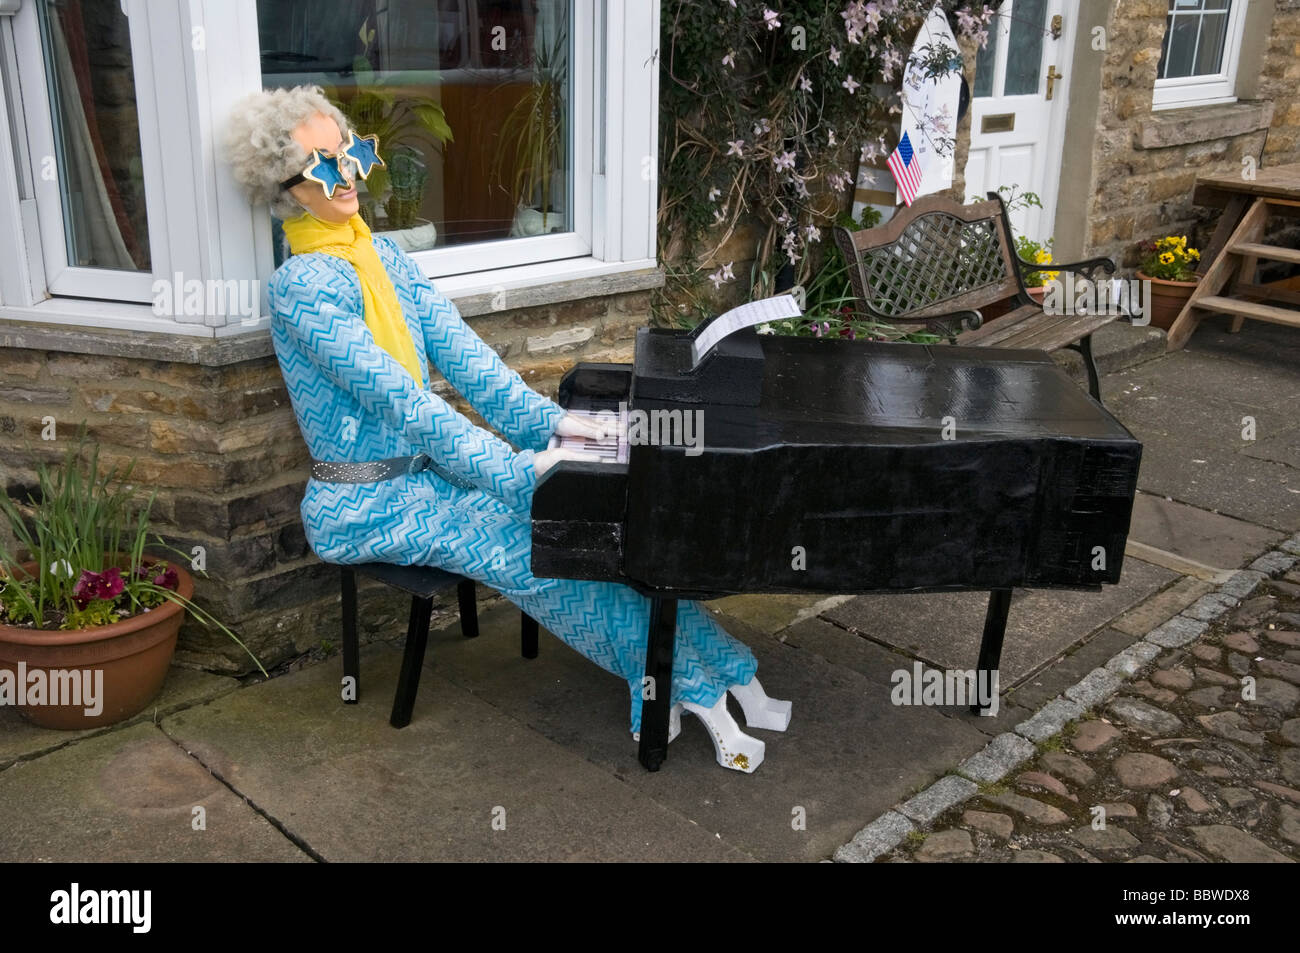 A model of Elton John playing the piano - Stock Image